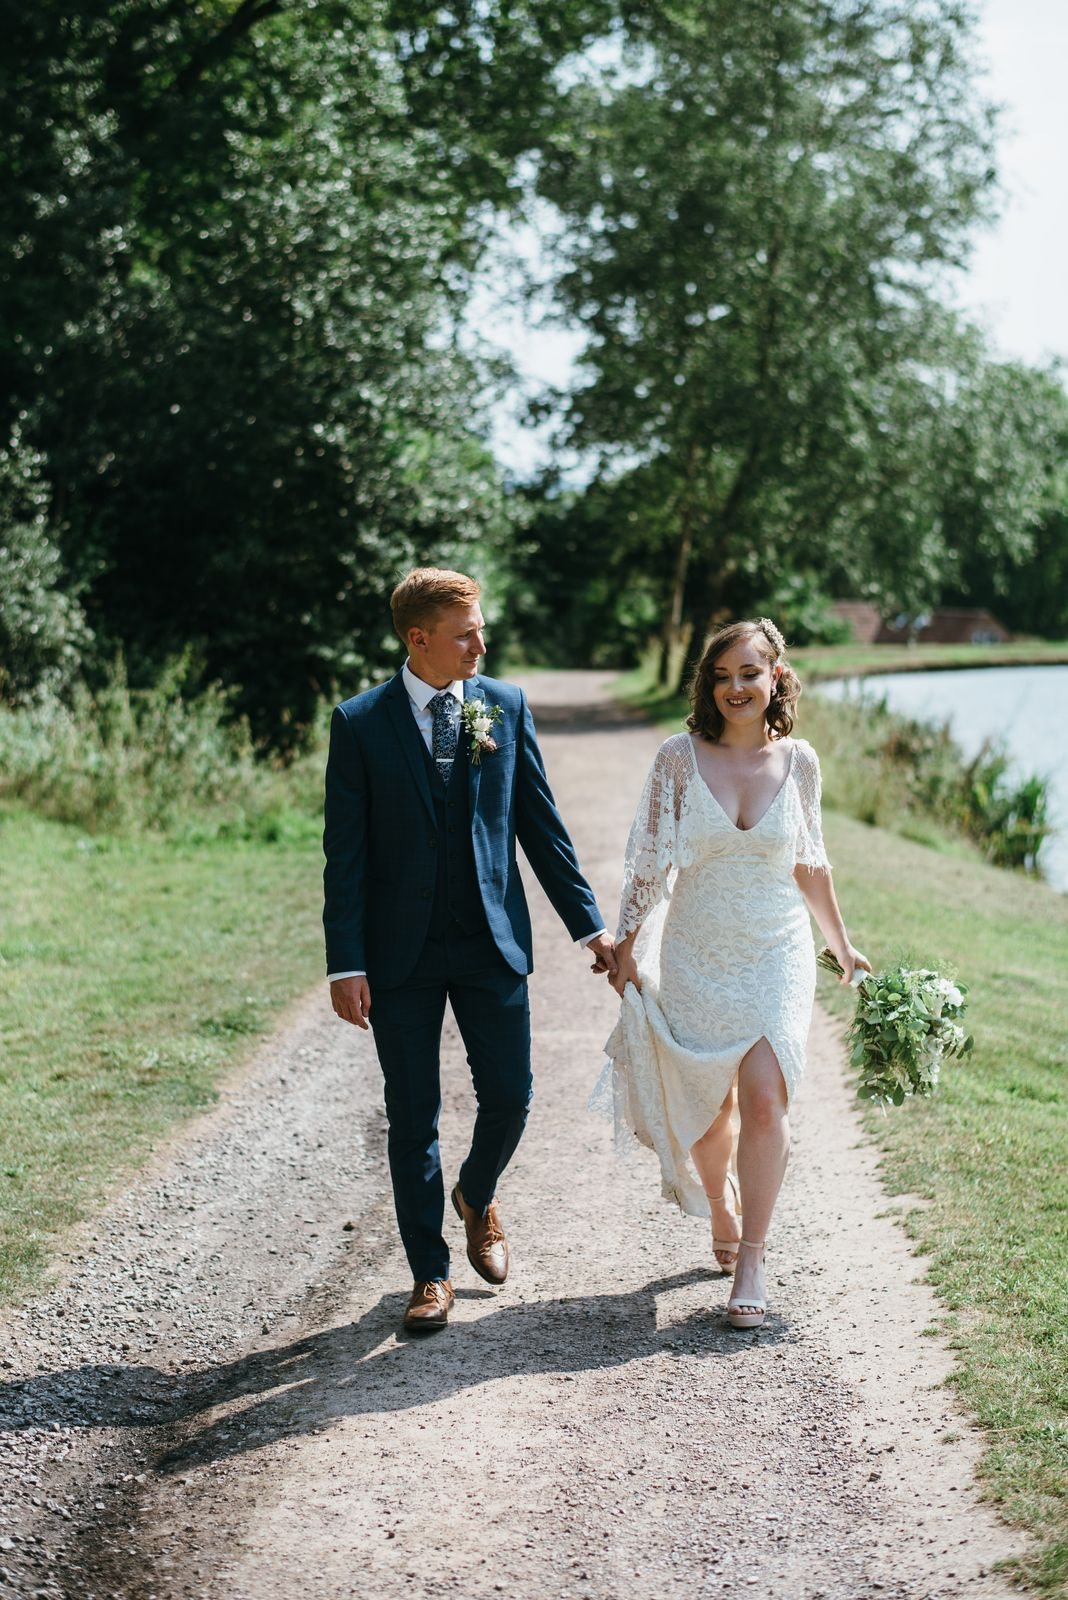 Bride and groom wander in a relaxed manner alongside the lake, hand in hand